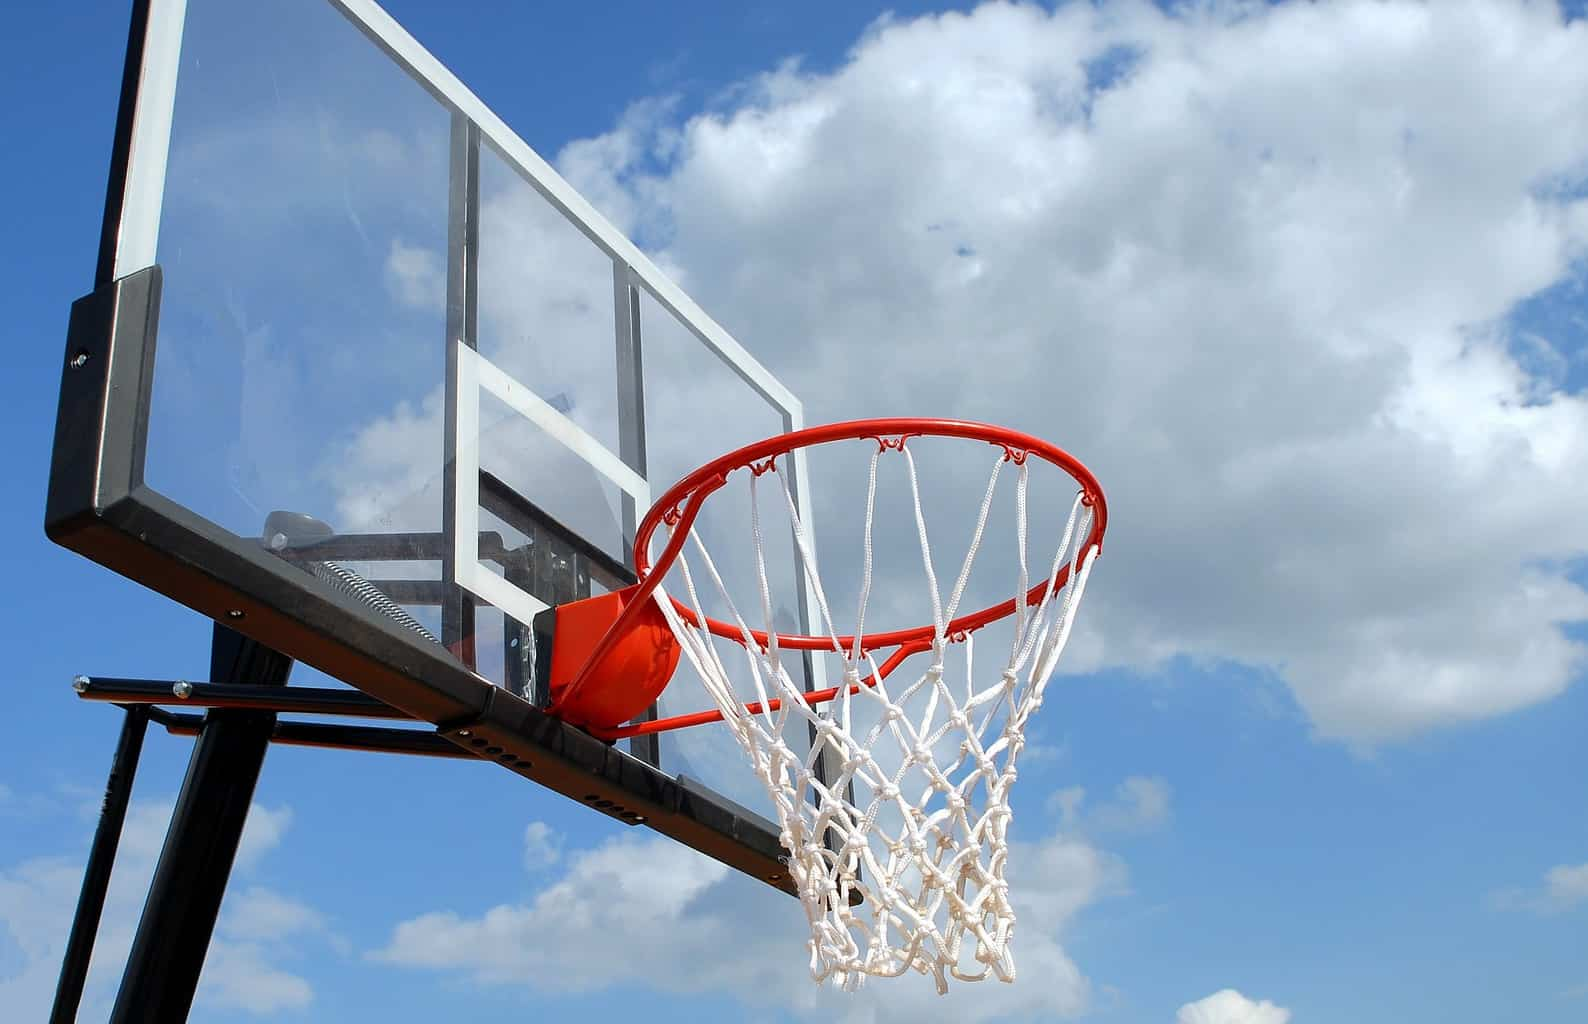 Backboard close up of an in-ground basketball hoop